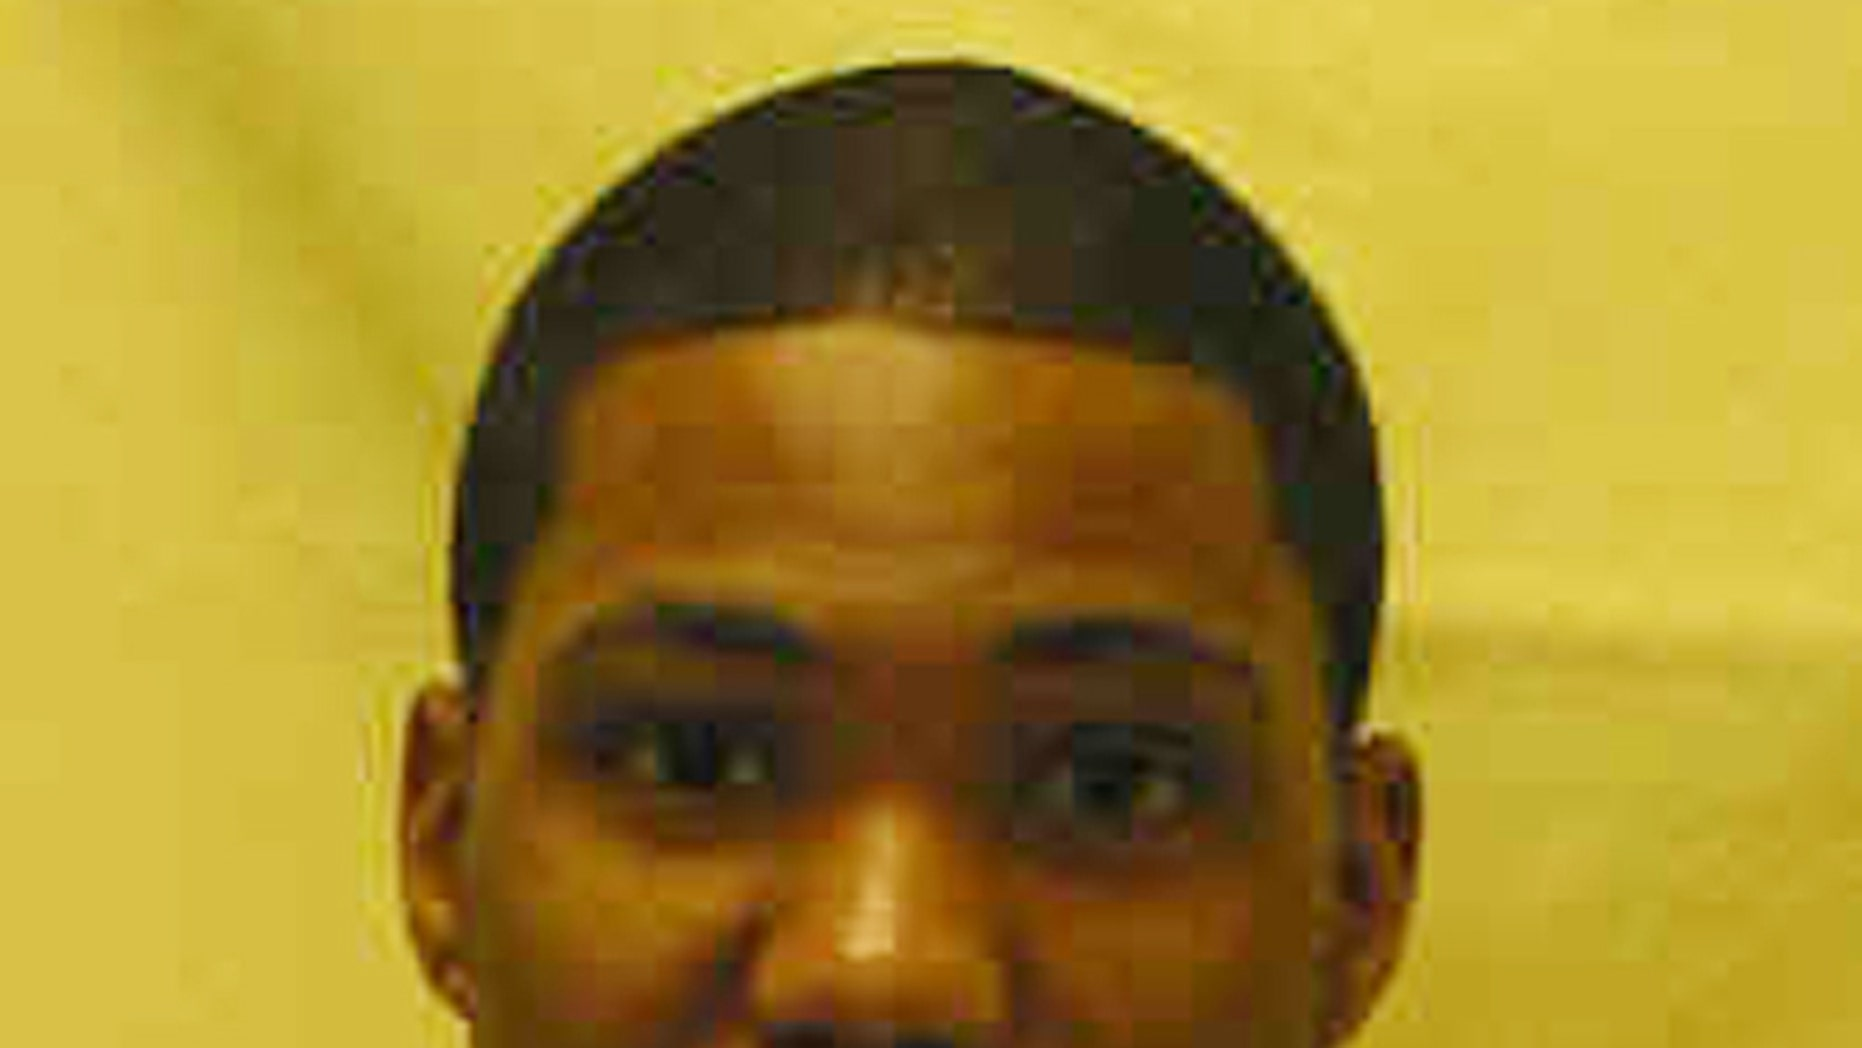 This photo provided by the Ohio Department of Rehabilitation and Corrections shows Lindsey Bruce.  Bruce is one of the three Ohio inmates, including a convicted killer of three students, that were able to escape from prison during recreation Thursday,  Sept. 11, 2014, in Lima, Ohio. A prison guard chased and caught Bruce first. (AP Photo/Ohio Department of Rehabilitation and Corrections)